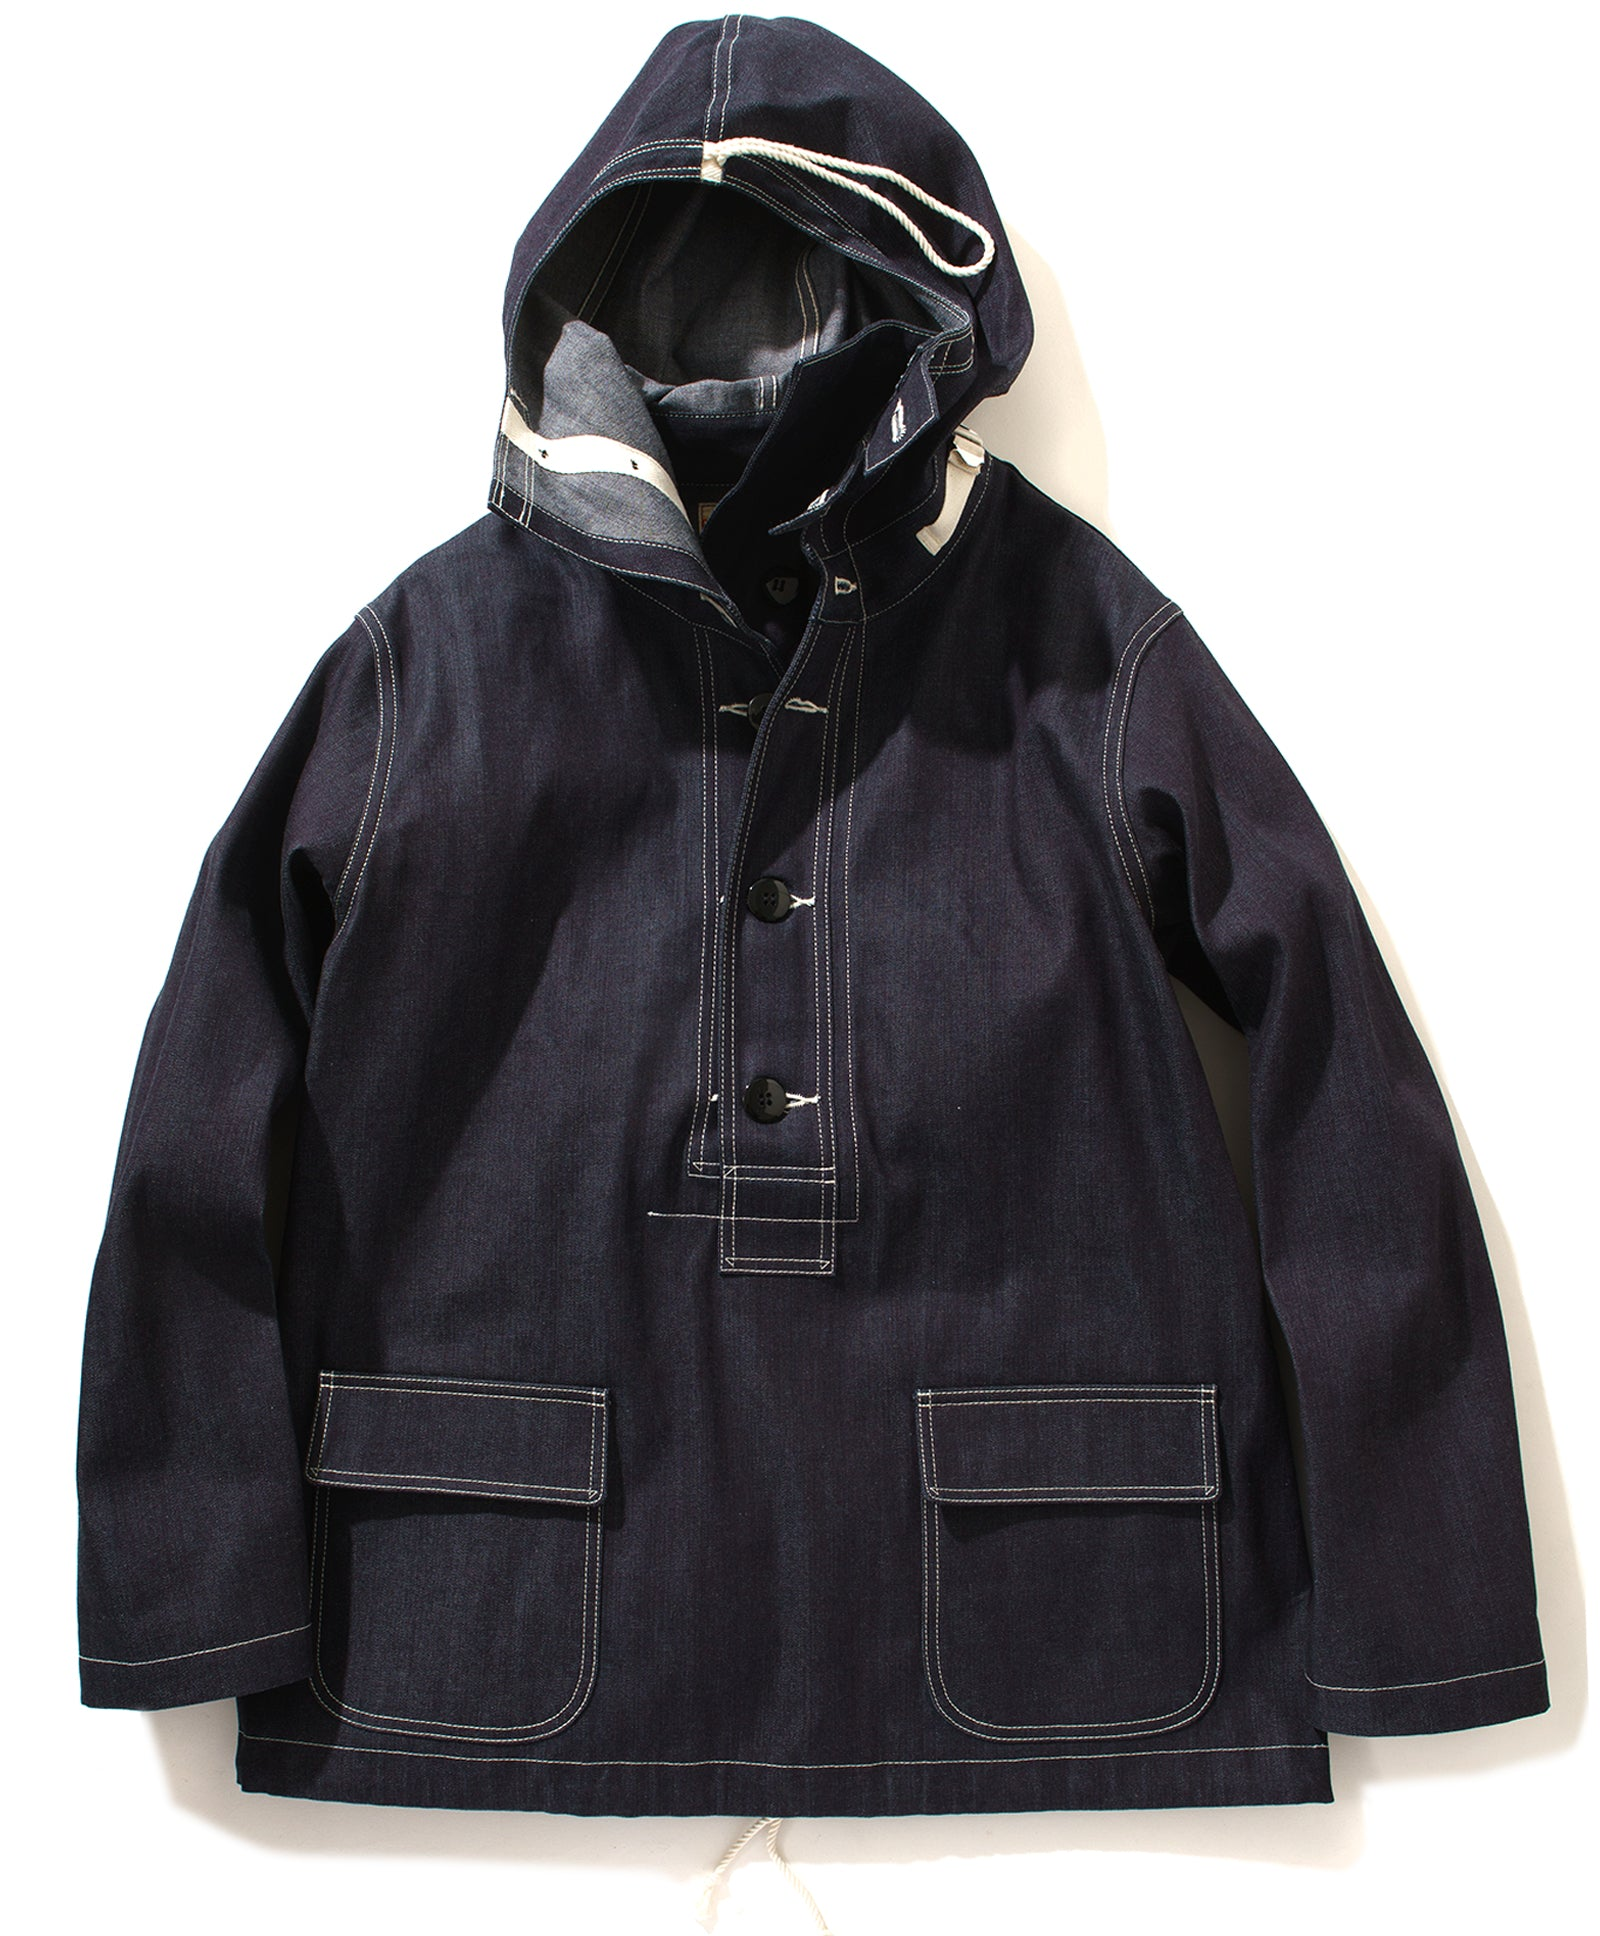 U.S. NAVY DENIM PARKA